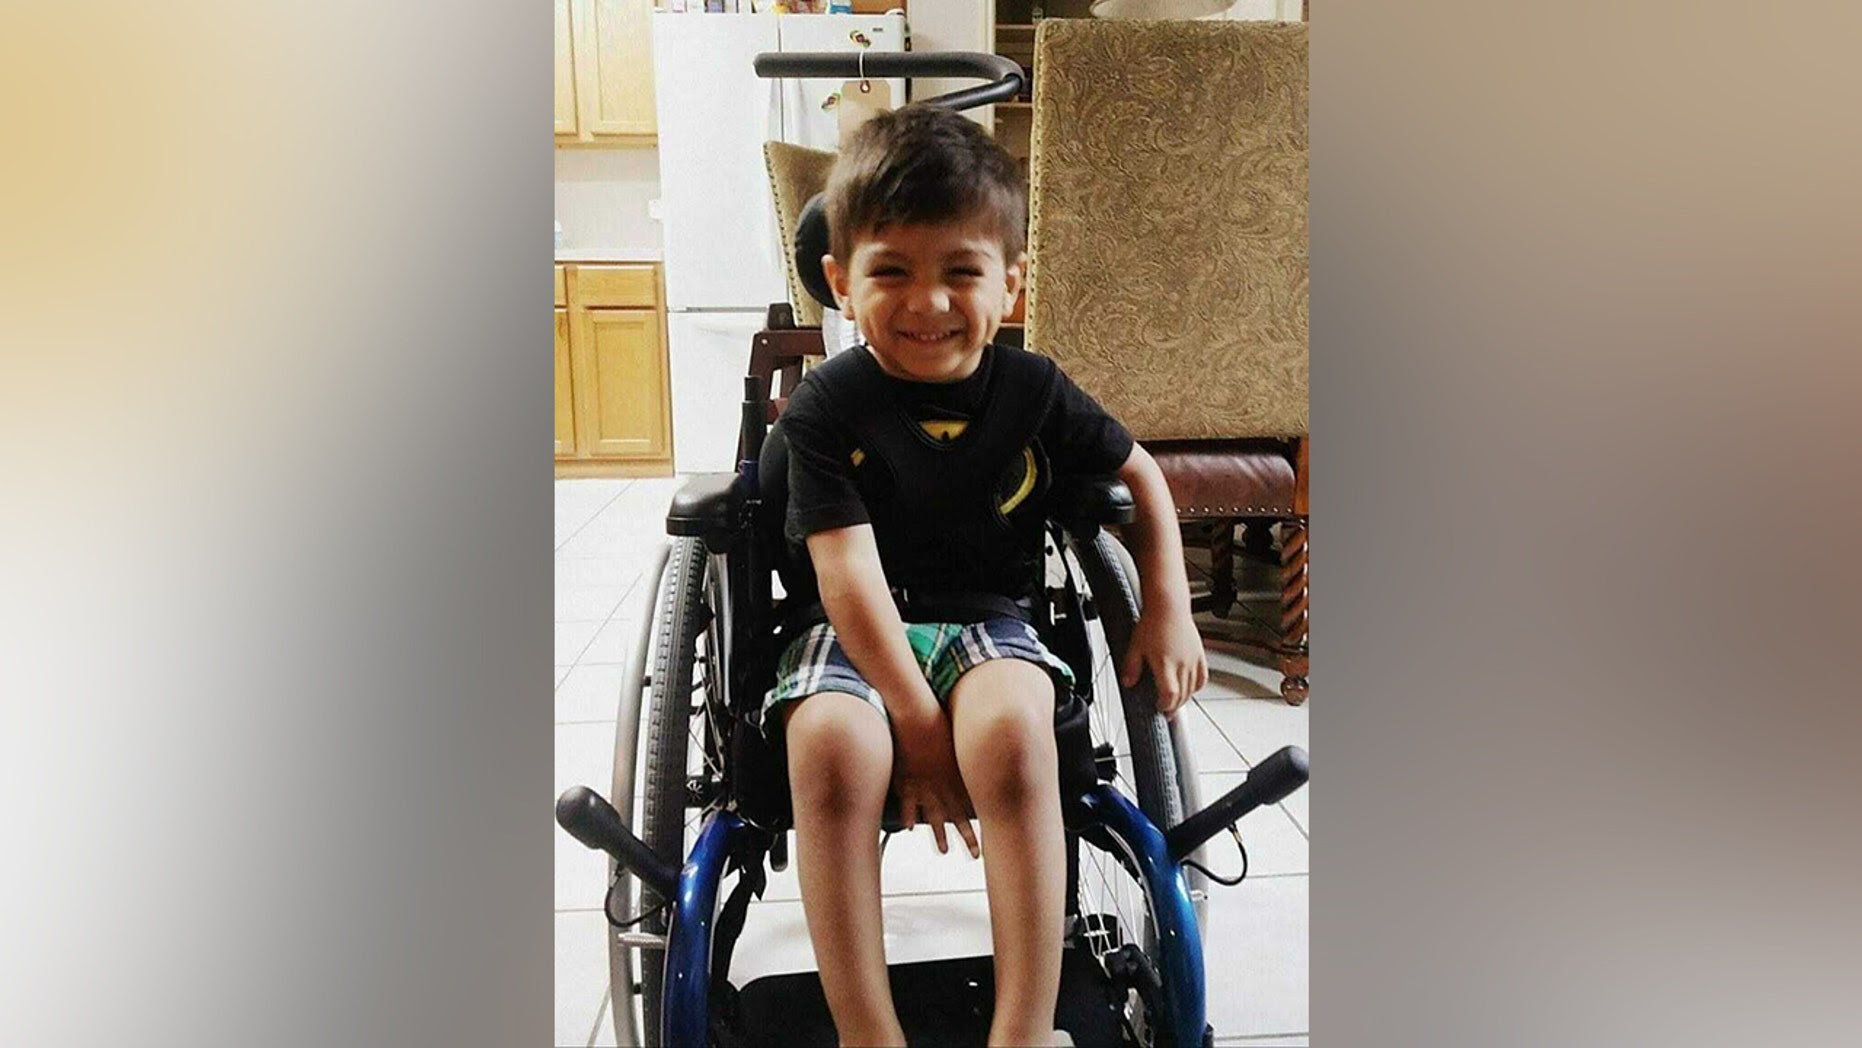 Seven-year-old with cerebral palsy saves his family from carbon monoxide poisoning